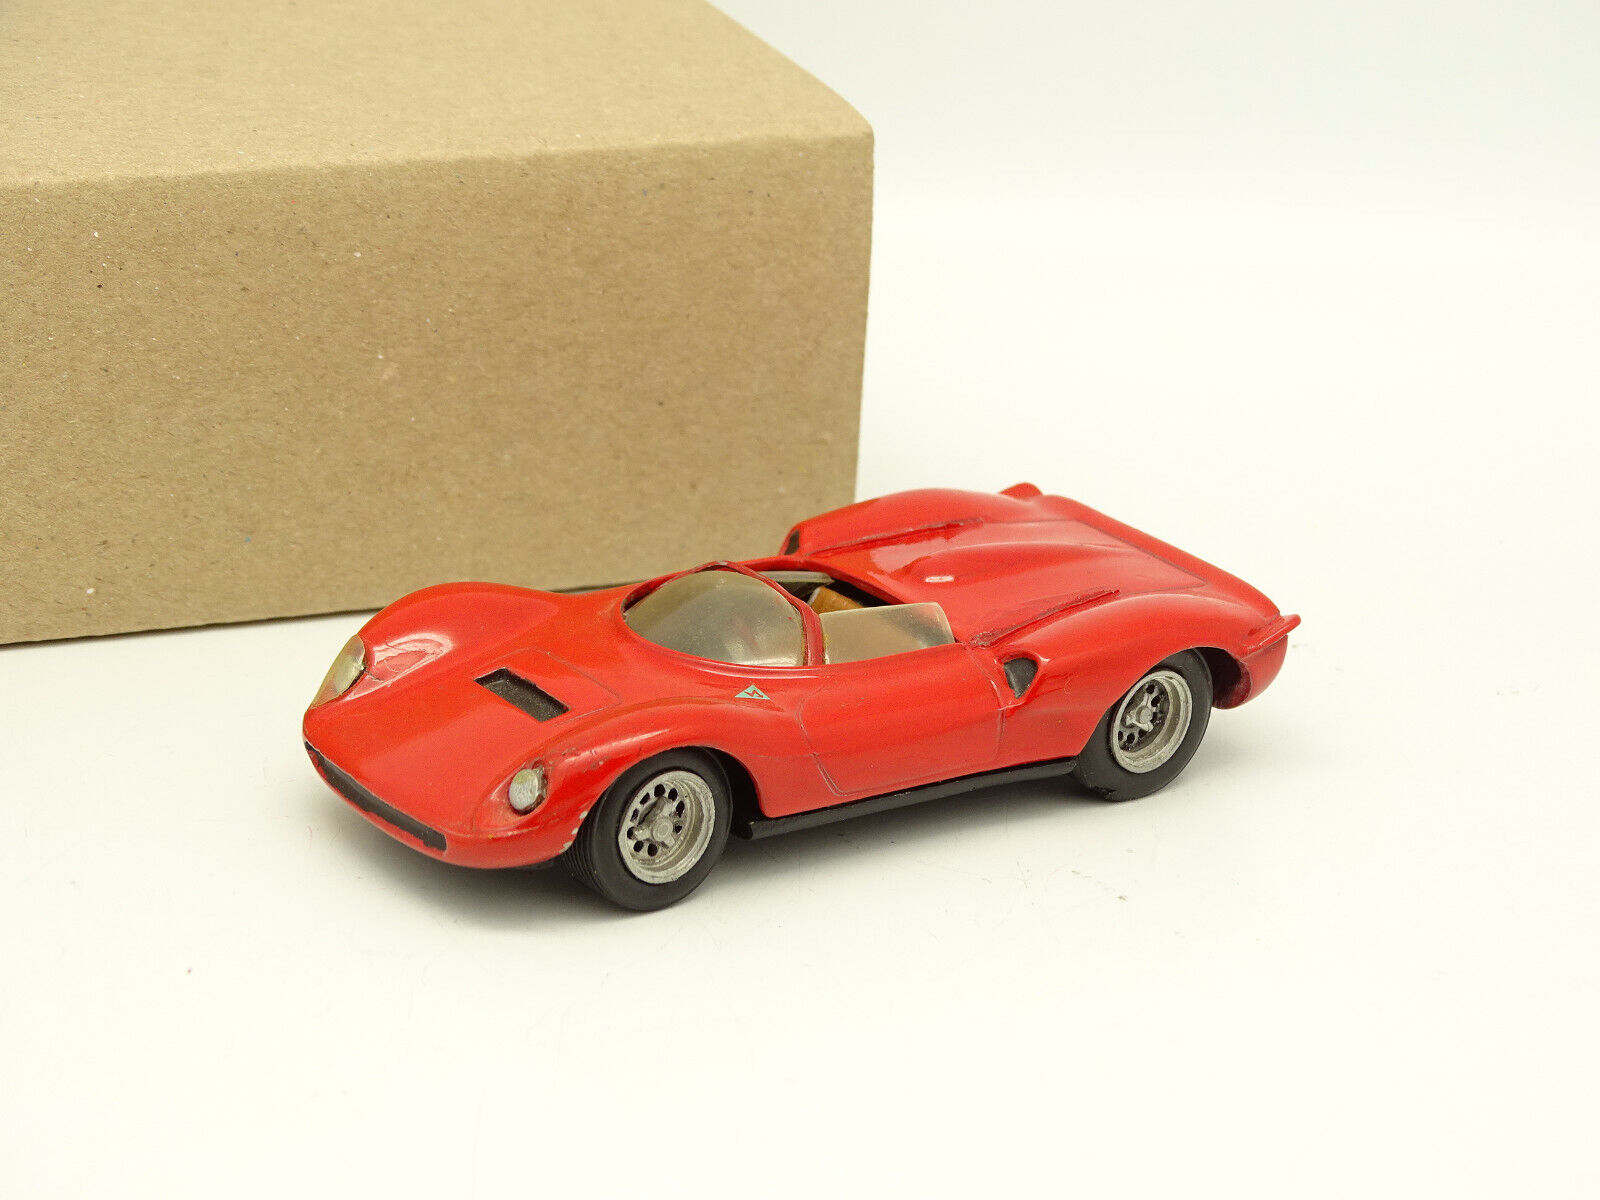 Meri Kit Mounted 1 43 - Ferrari 206 Sp Red